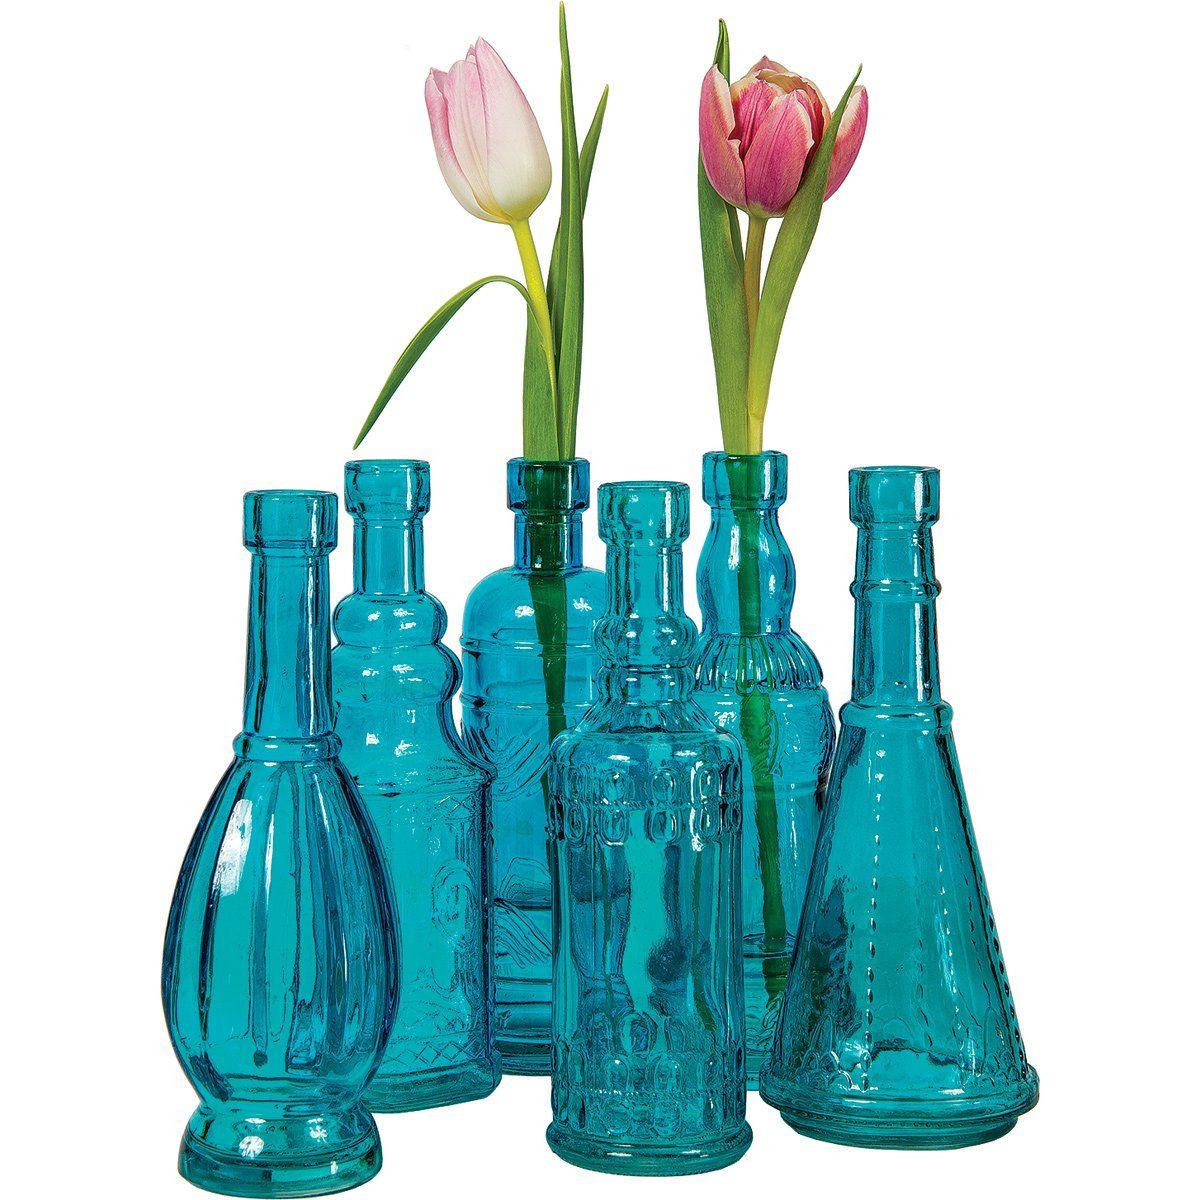 Waterford Crystal Vase Small Of Small Crystal Vase Photos Waterford Crystal Vase 225 00 Small 65 for Small Crystal Vase Photograph Luna Bazaar Small Vintage Glass Bottle Set 7 Inch Turquoise Blue Of